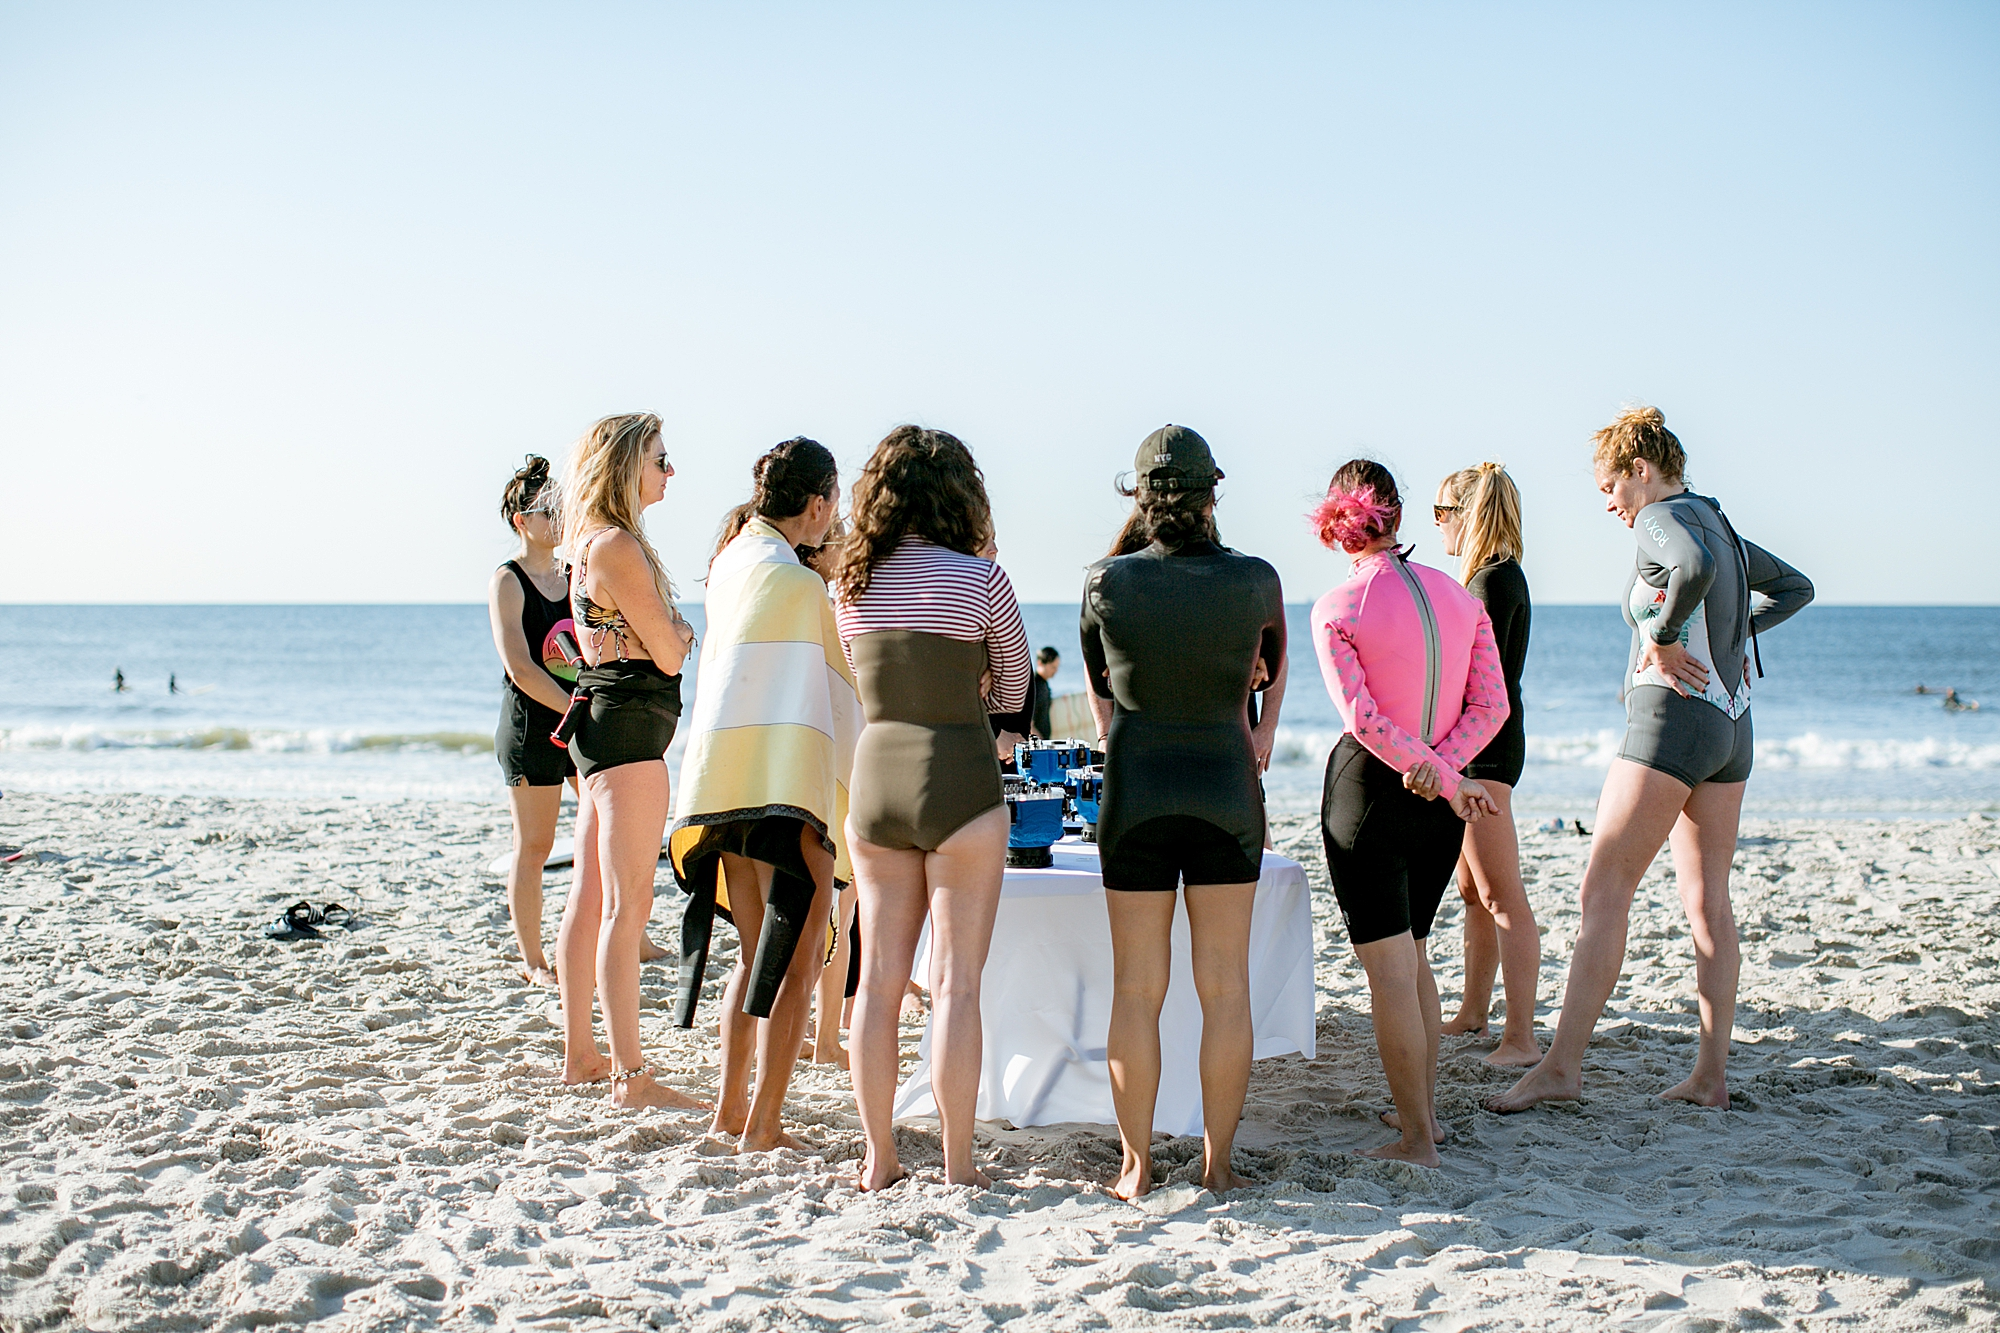 Women's Surf Film Festival - Women's Surf Photography Workshop by Bryanna Bradley - Photographer Kelee Bovelle @keleeb_0016.jpg